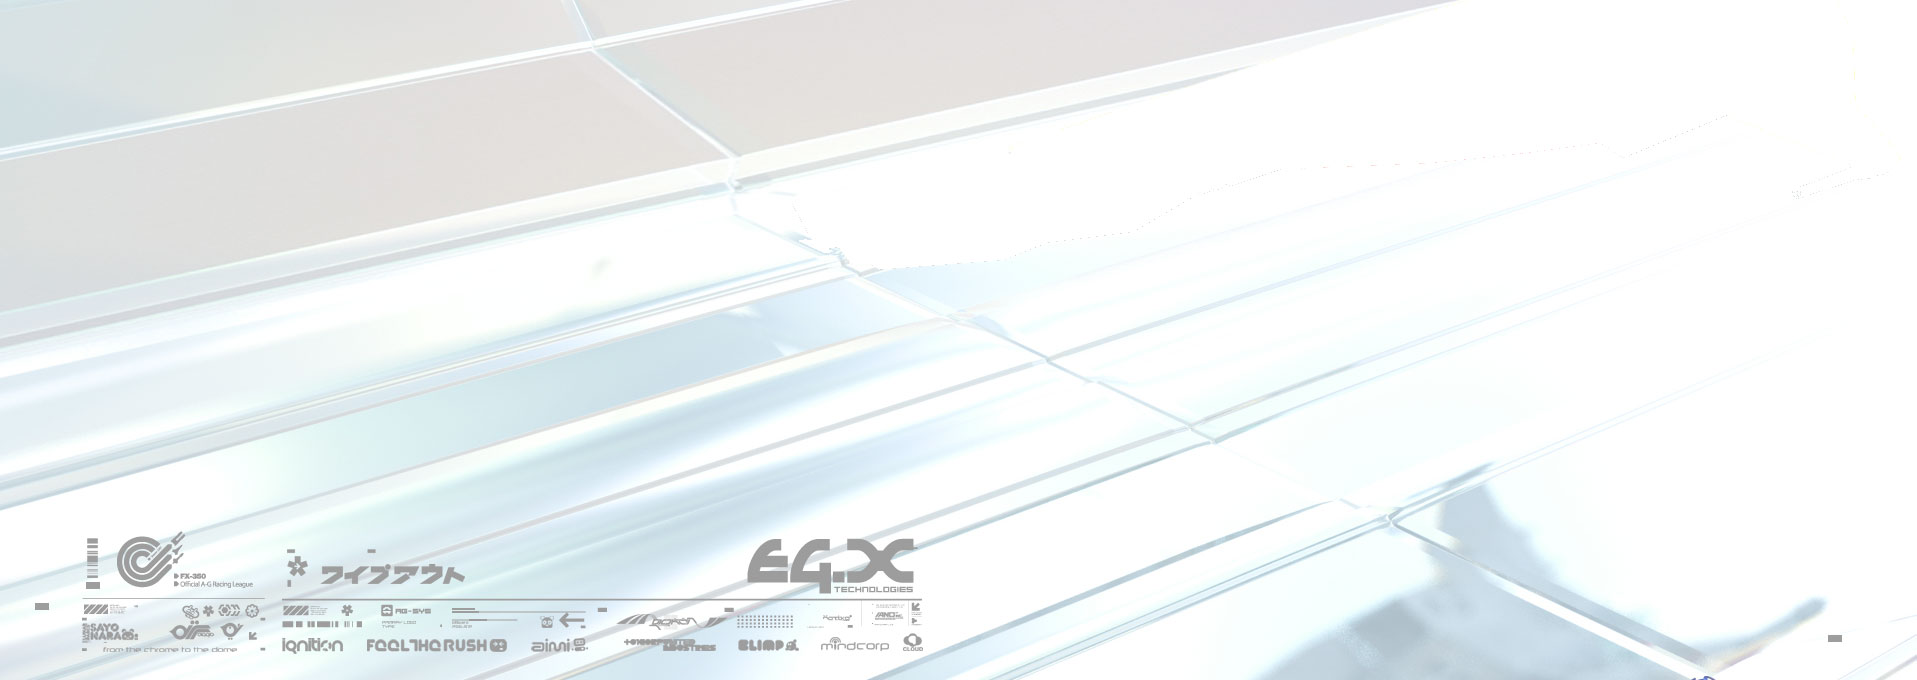 SonyPlaystation-3D-WipeOut-background